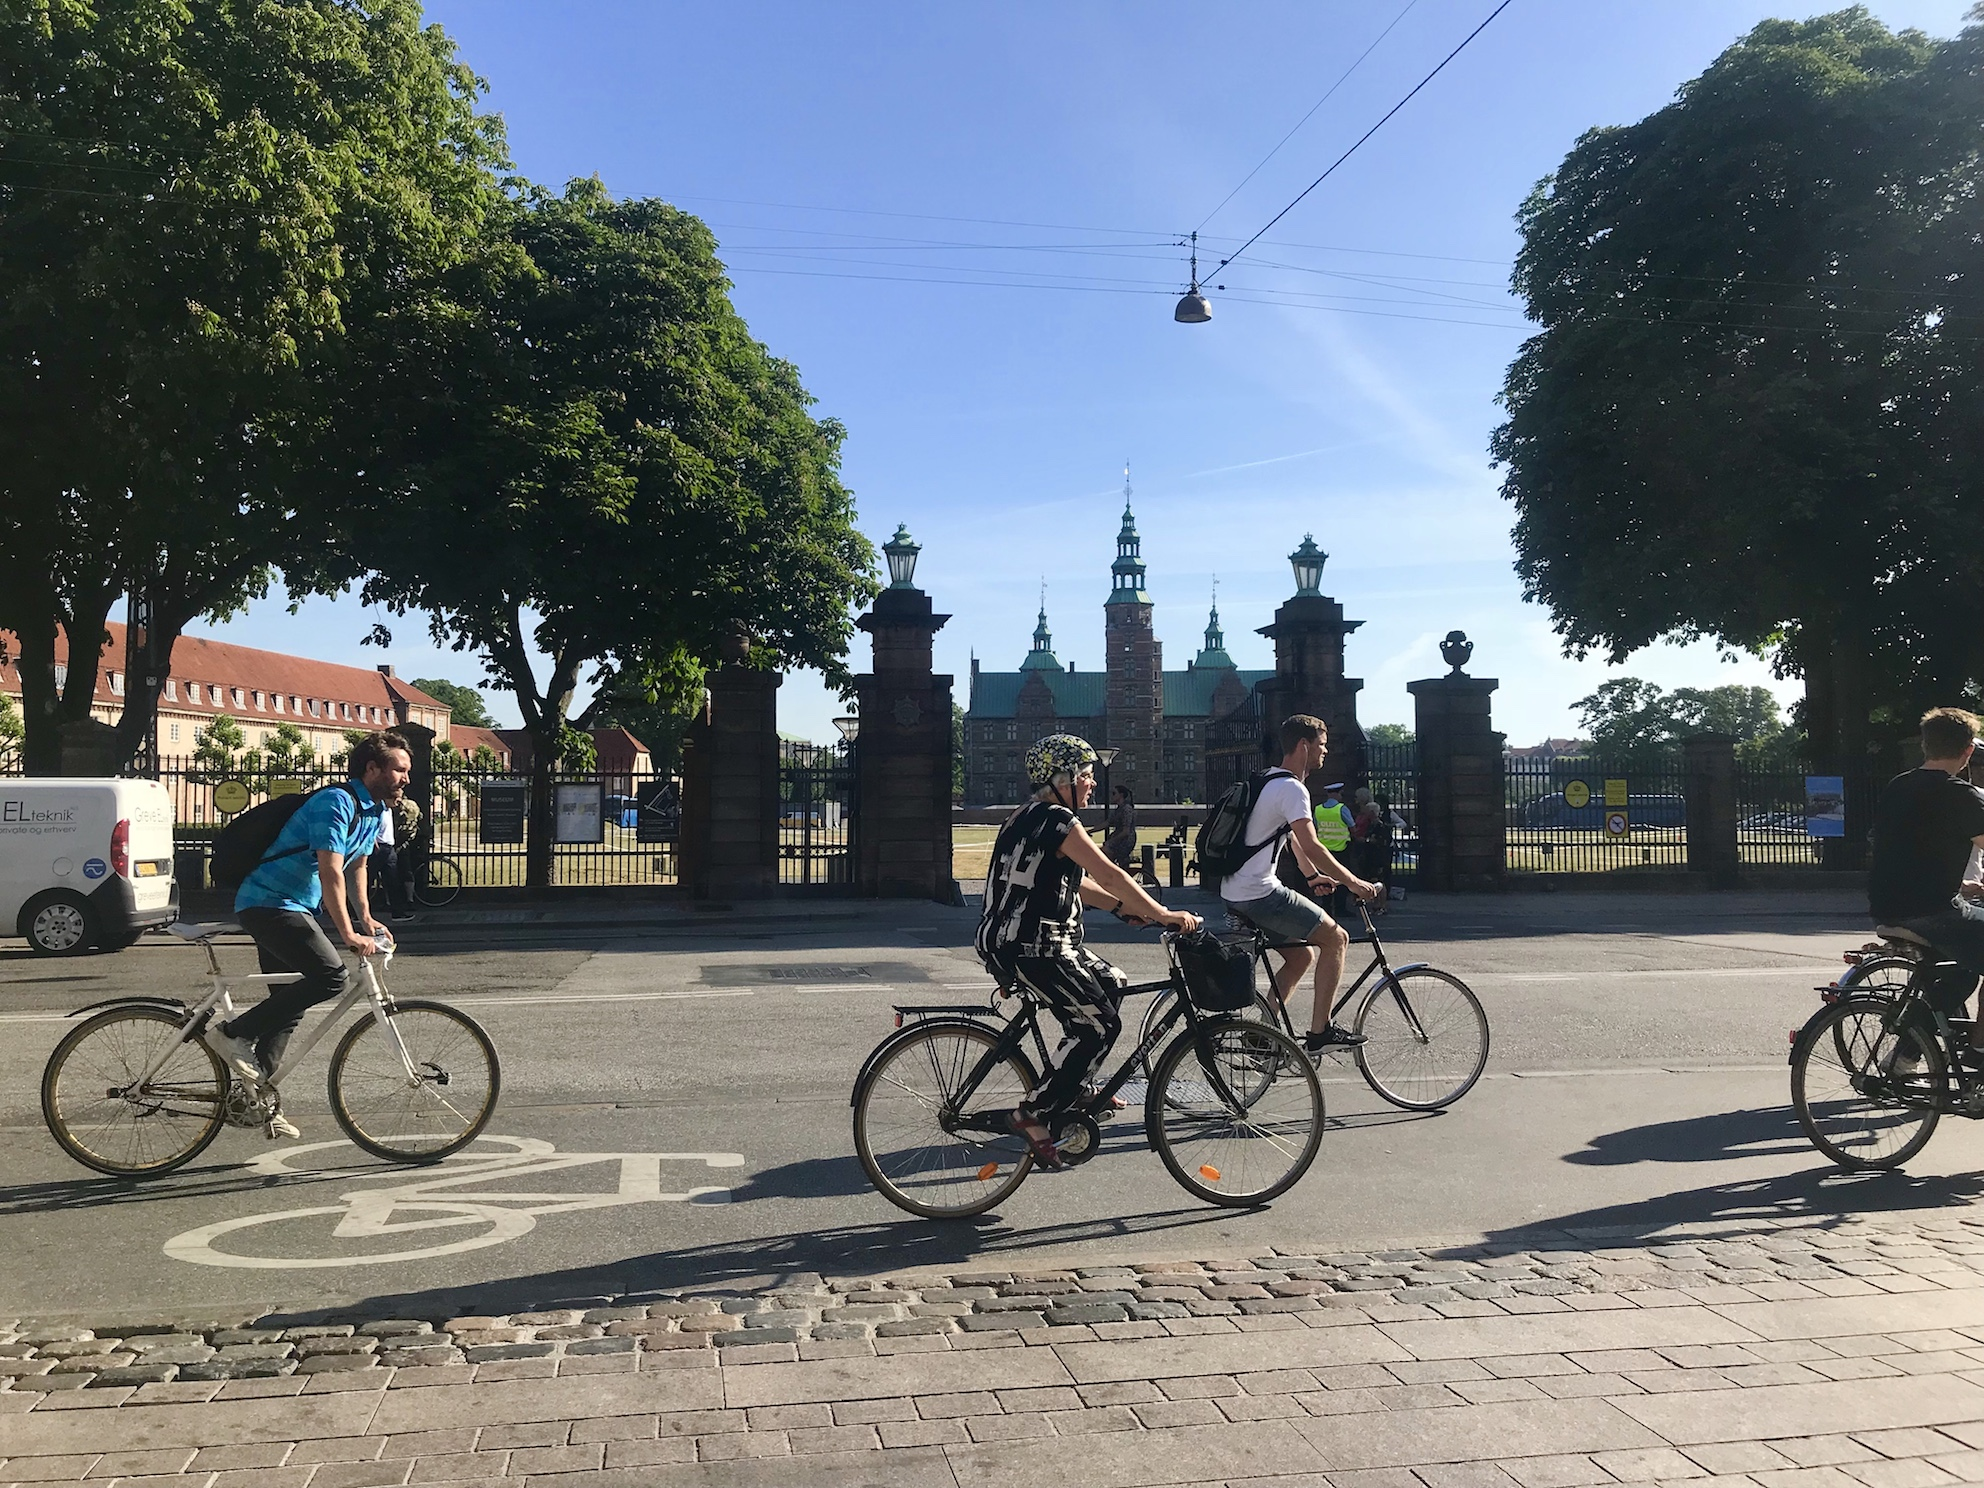 cyclists_in_front_of_castle_copenhagen